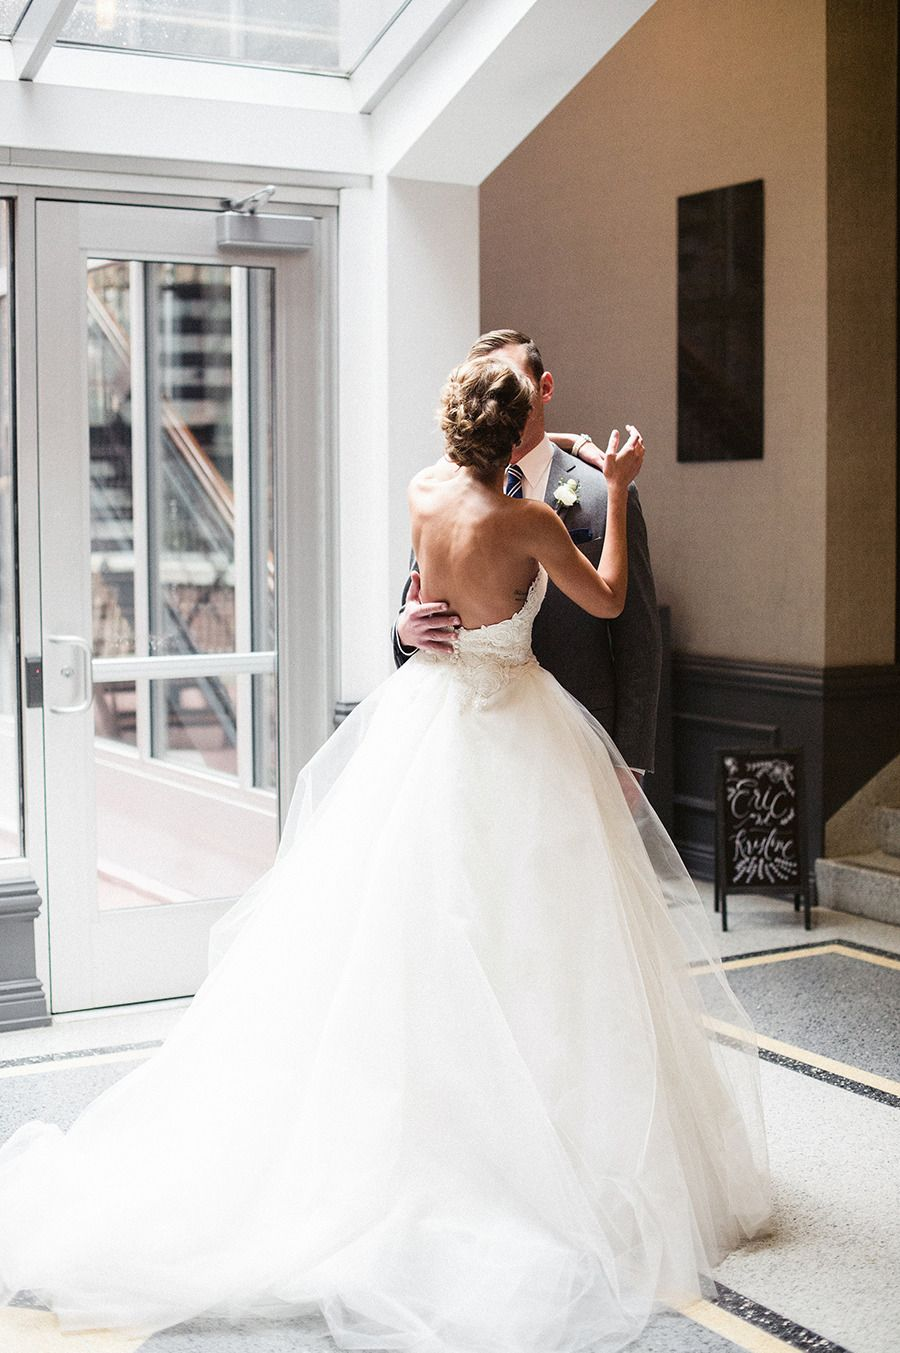 Timeless + Classic Chicago Wedding | Pinterest | Brautkleider